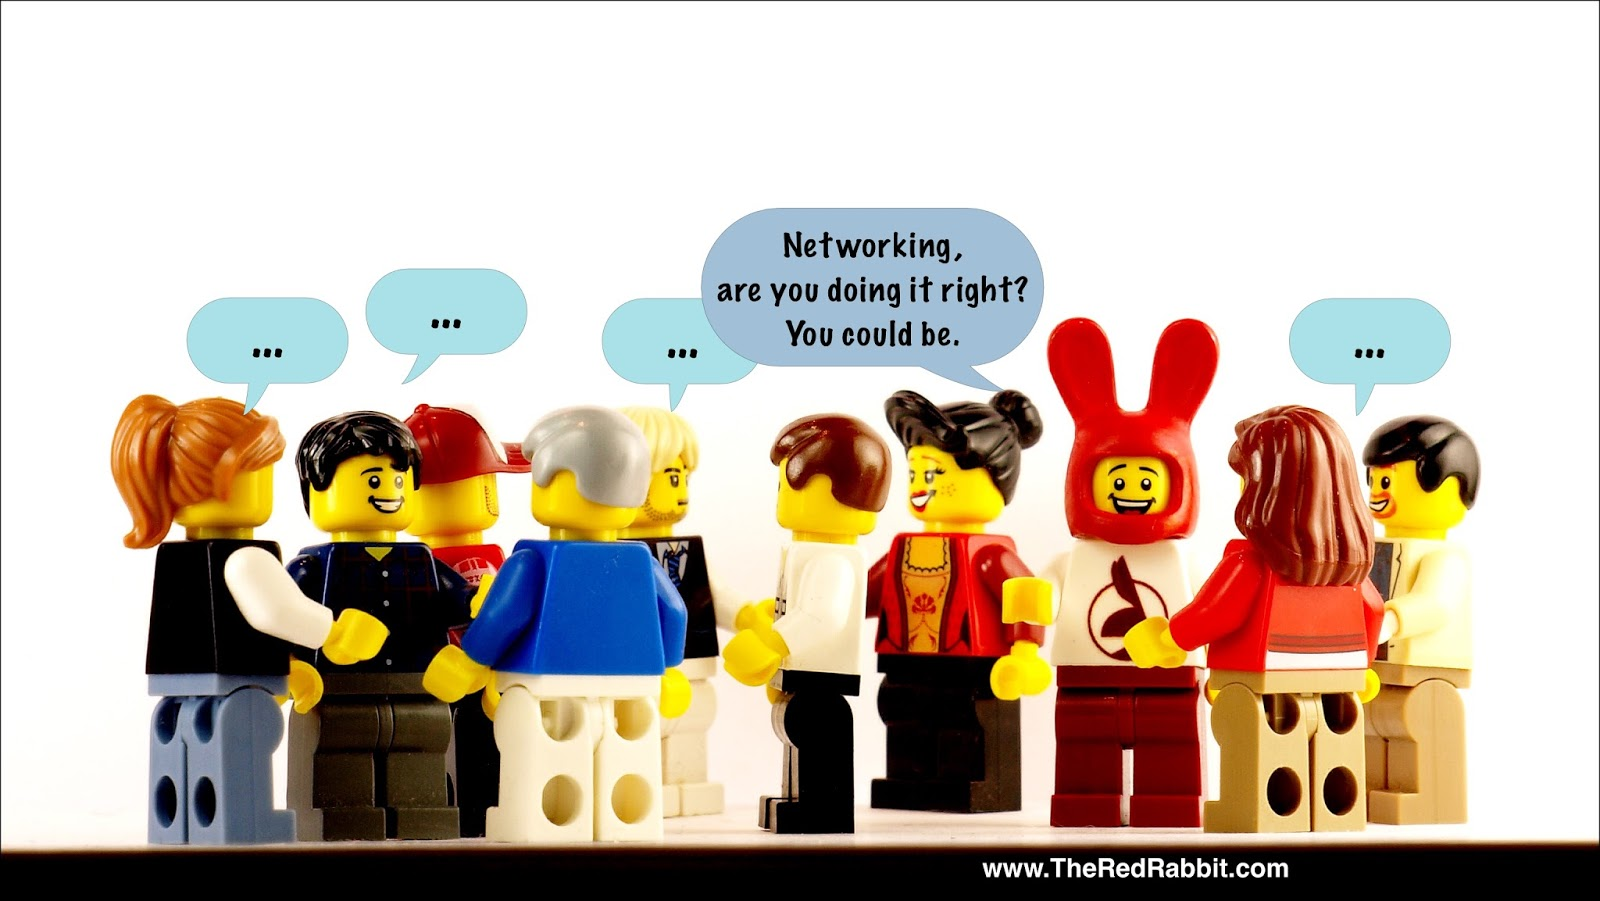 The Red Rabbit Studio: Looking to Network, with you. Lego Styles.